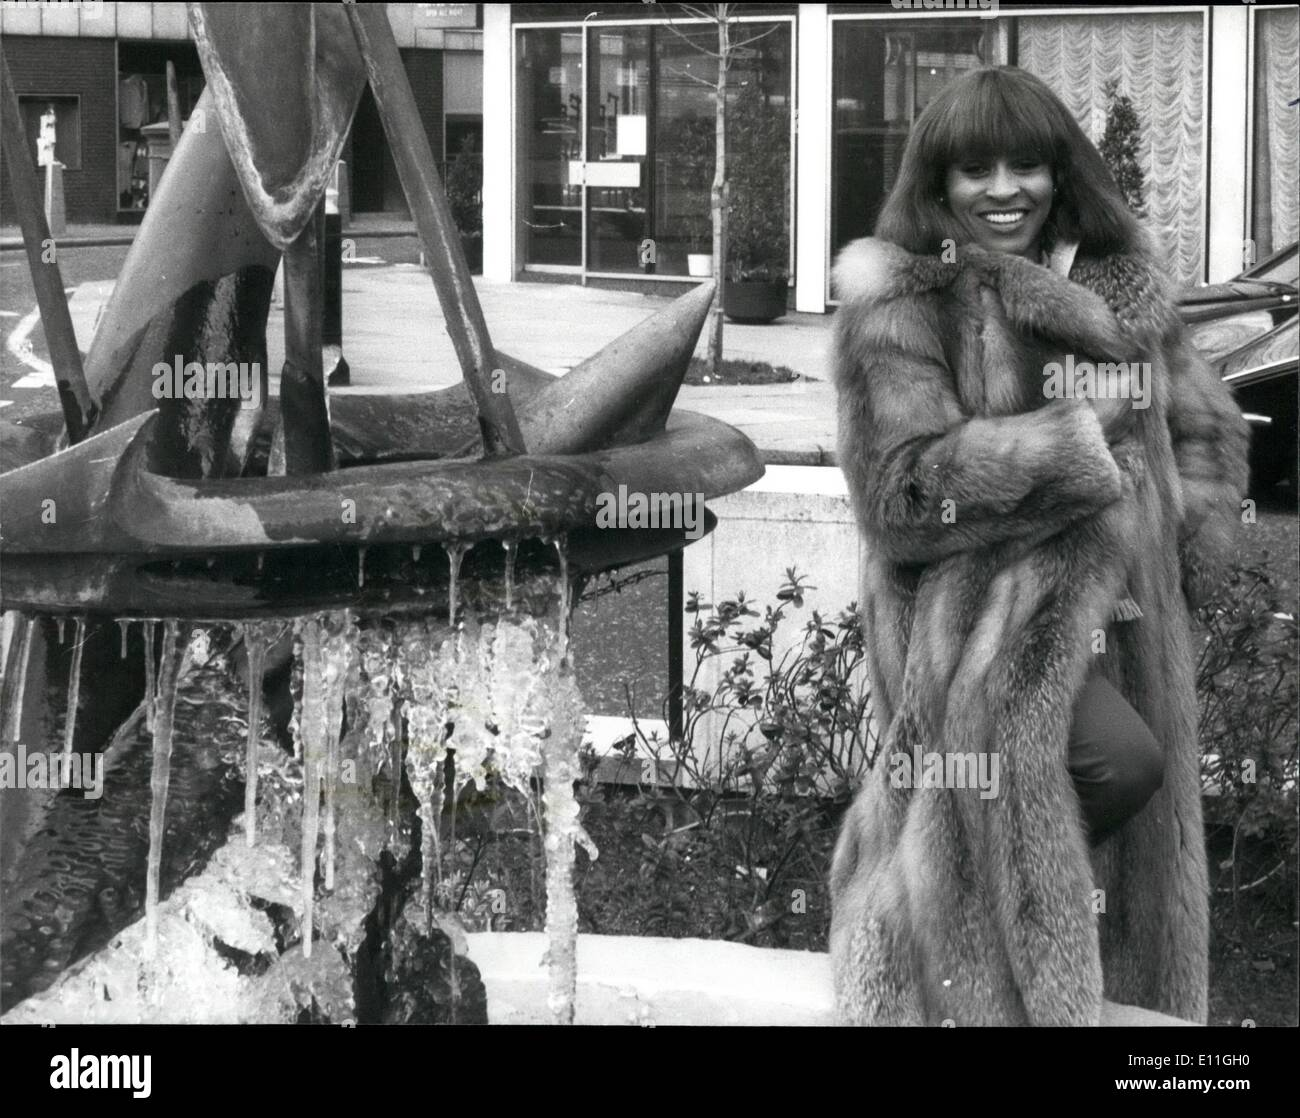 Feb. 02, 1978 - AMERICAN SOUL SINGER TINA TURNER IN BRITAIN Tina Turner, who has been described by the critics as Stock Photo